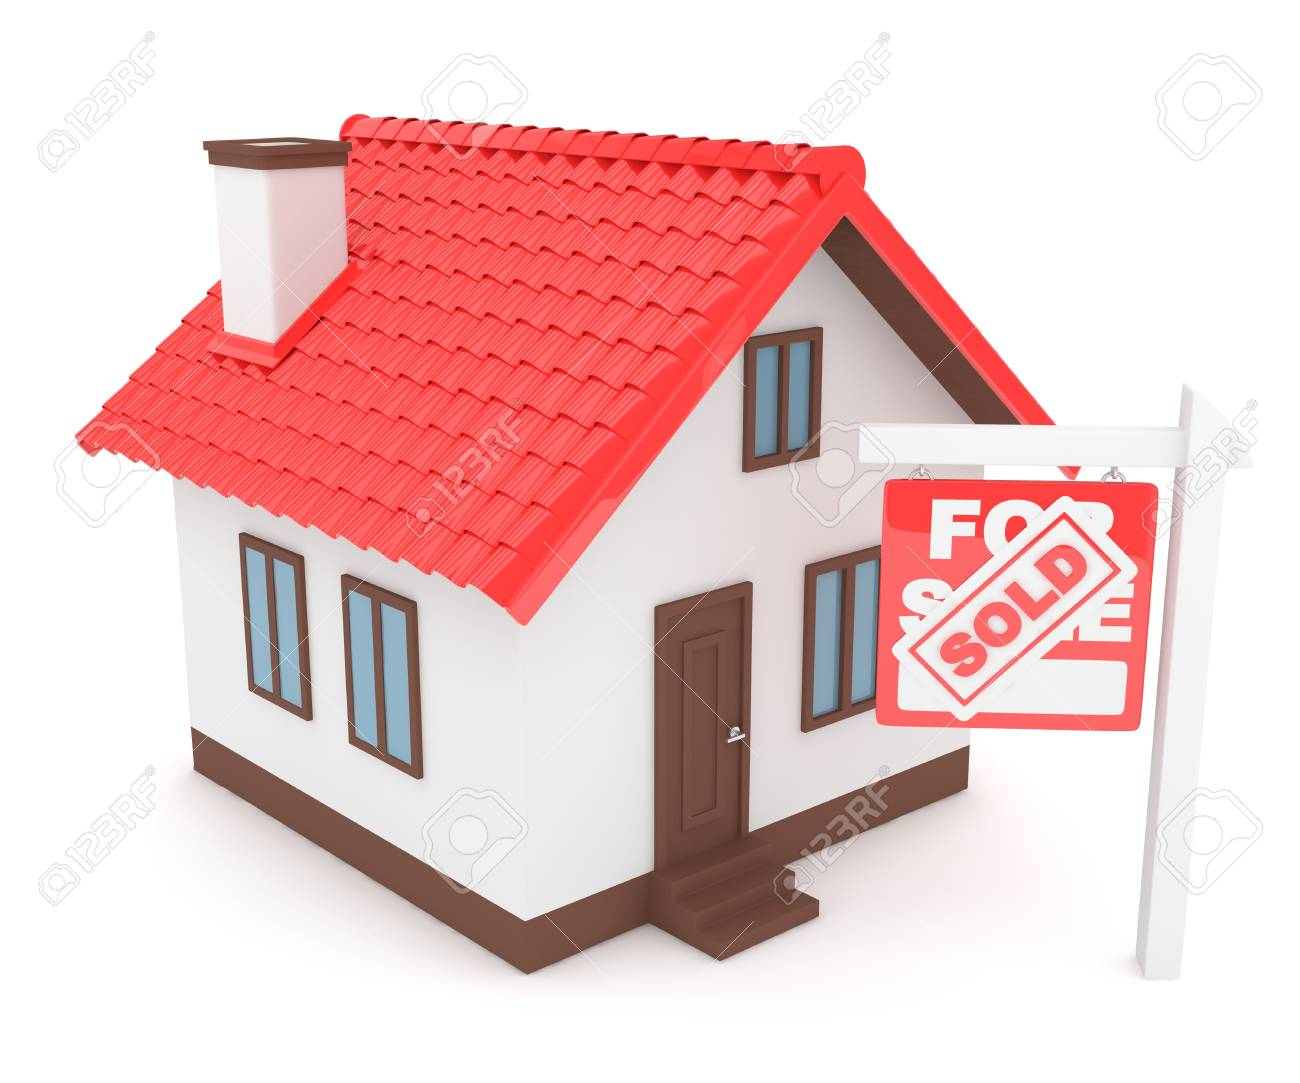 Isolated model of house with sign for sale sold  Concept of real